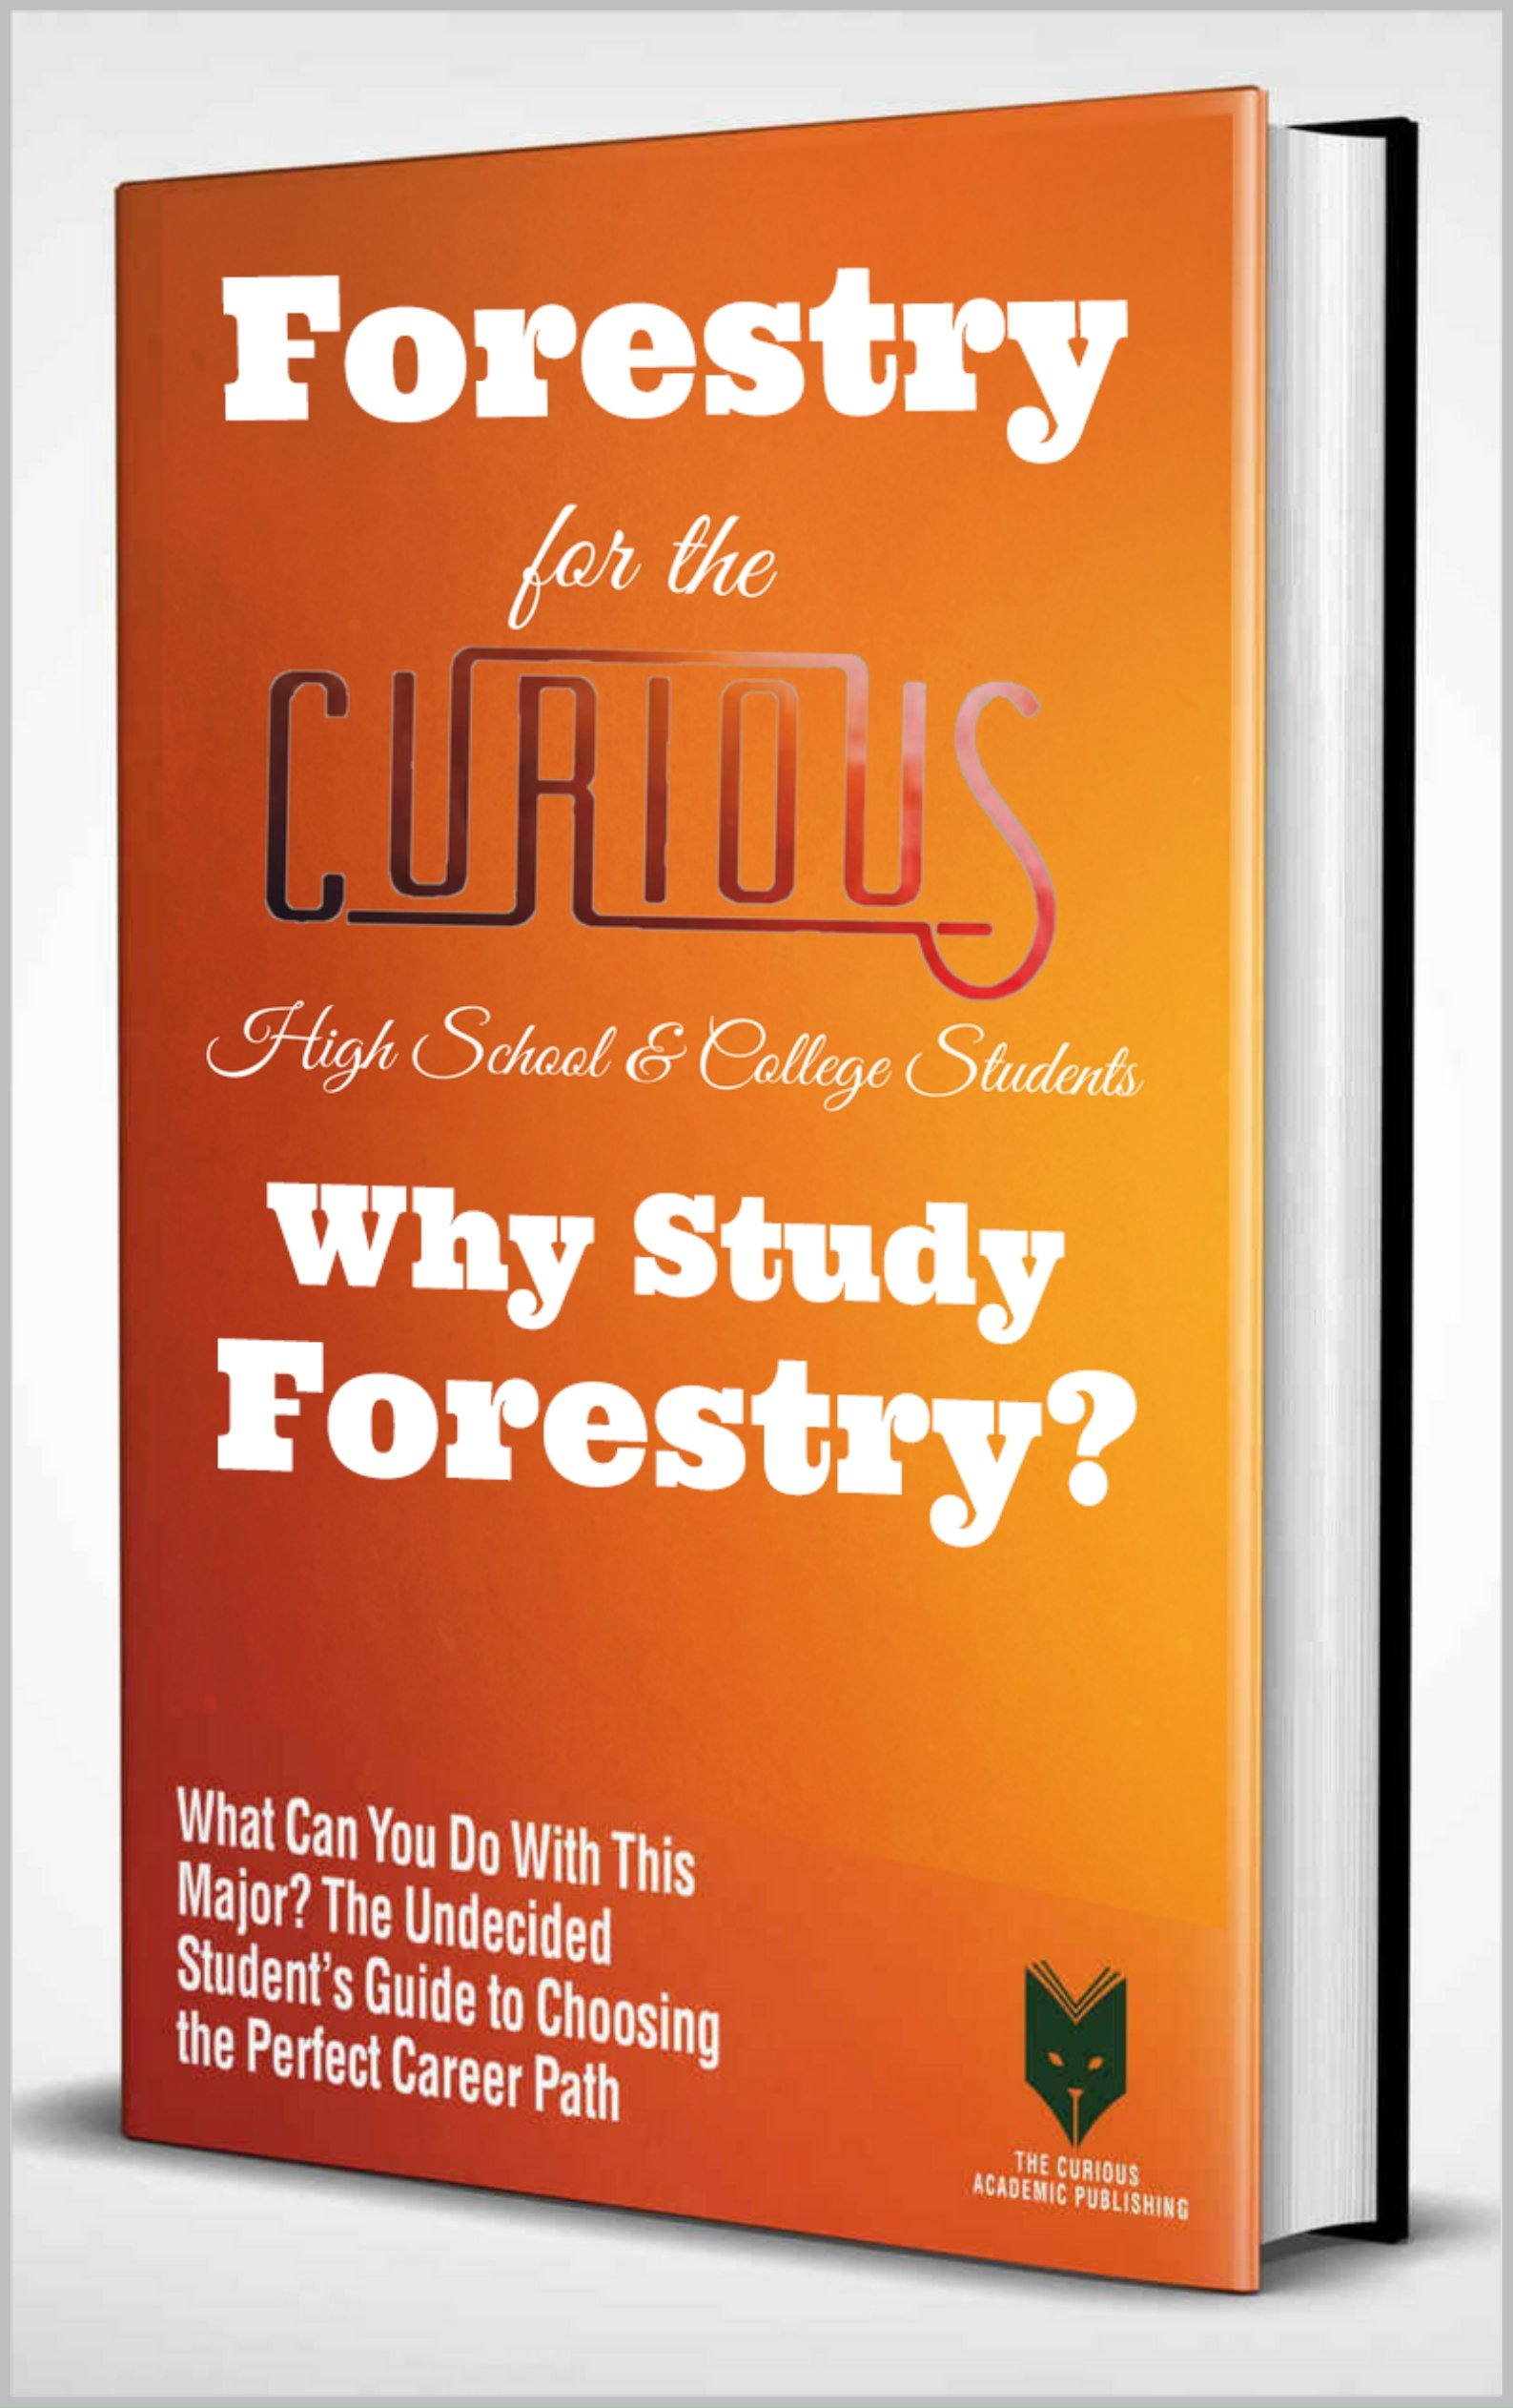 Forestry for the Curious: Why Study Forestry? (The Undecided Student's Guide to Choosing the Perfect University Major & Career Path)